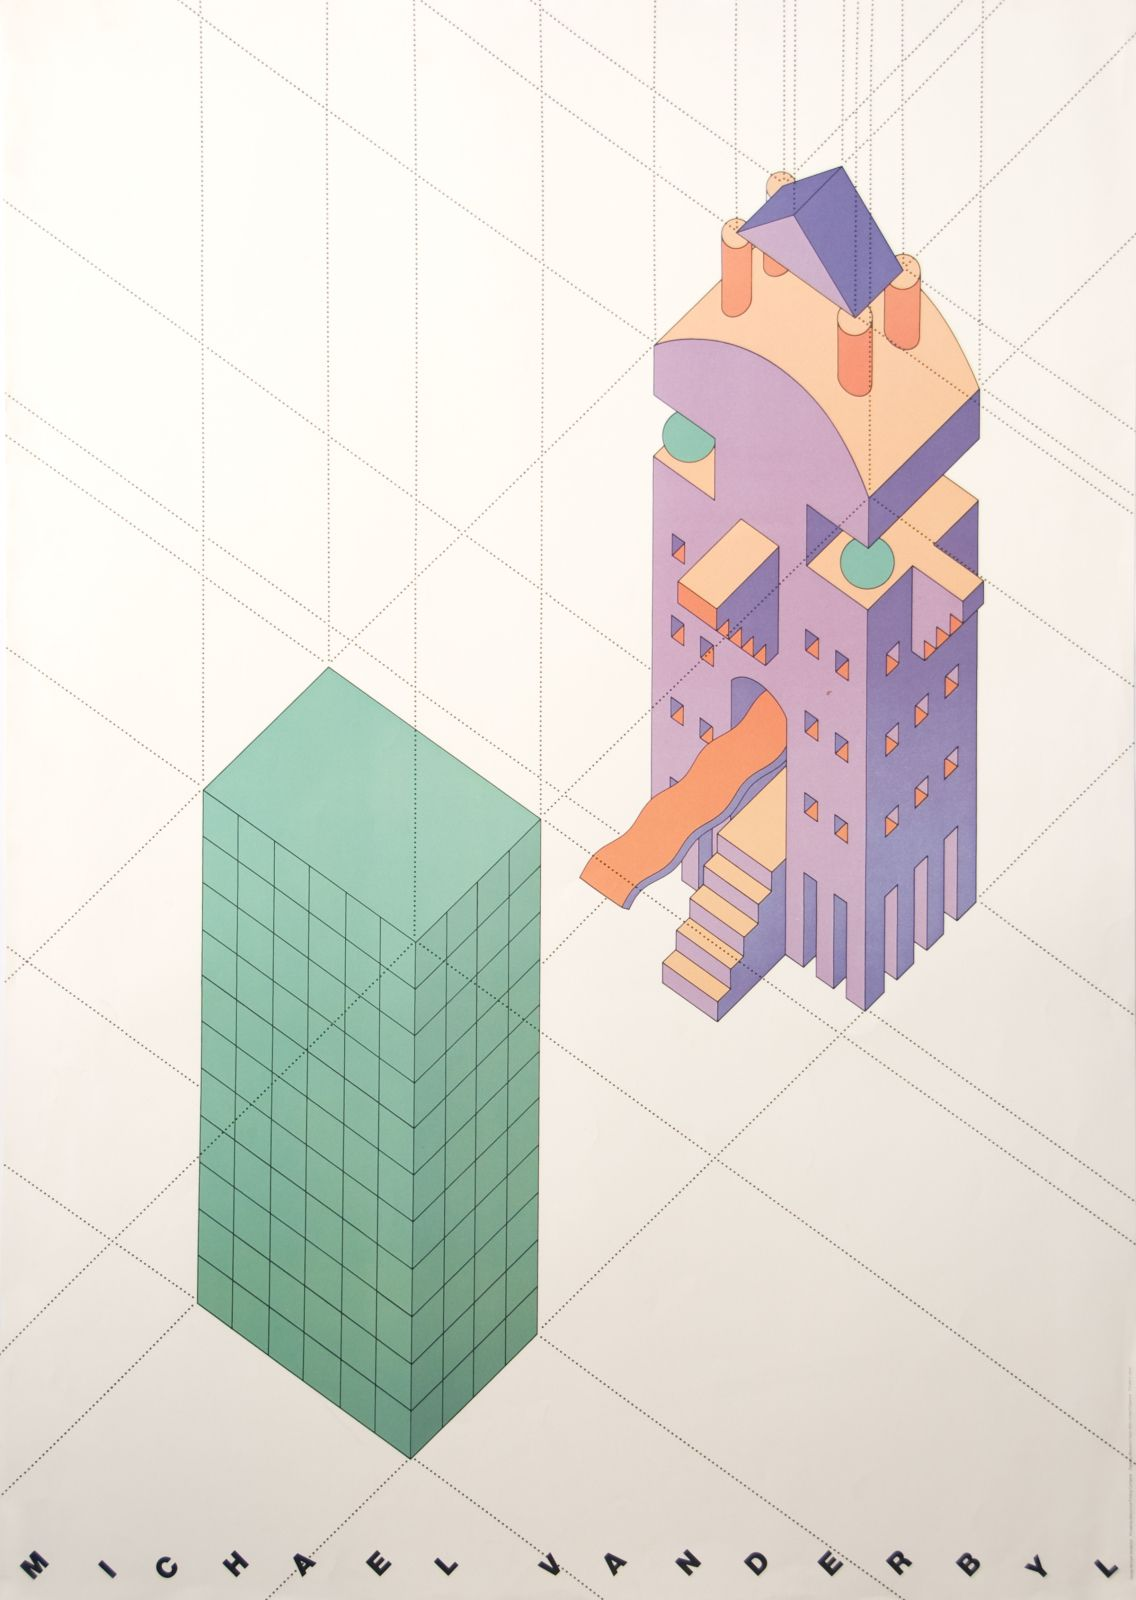 100 Years Of Design Aiga Architecture Poster Postmodernism Architecture Illustration